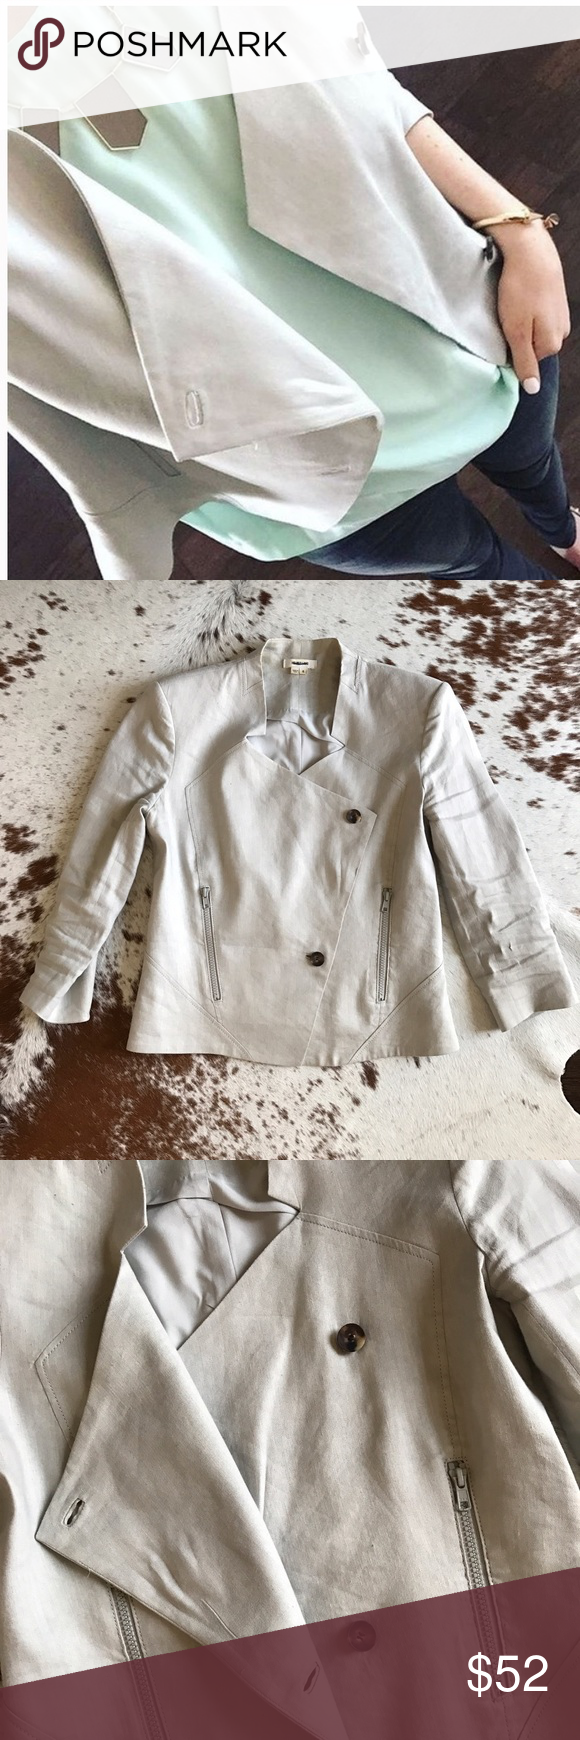 Helmut Lang grey blazer 6 Perfect for work or going out and looks amazing on. 3/4 length sleeves. Minor staining on inside of the collar from a spray tan, otherwise in excellent condition. Helmut Lang Jackets & Coats Blazers